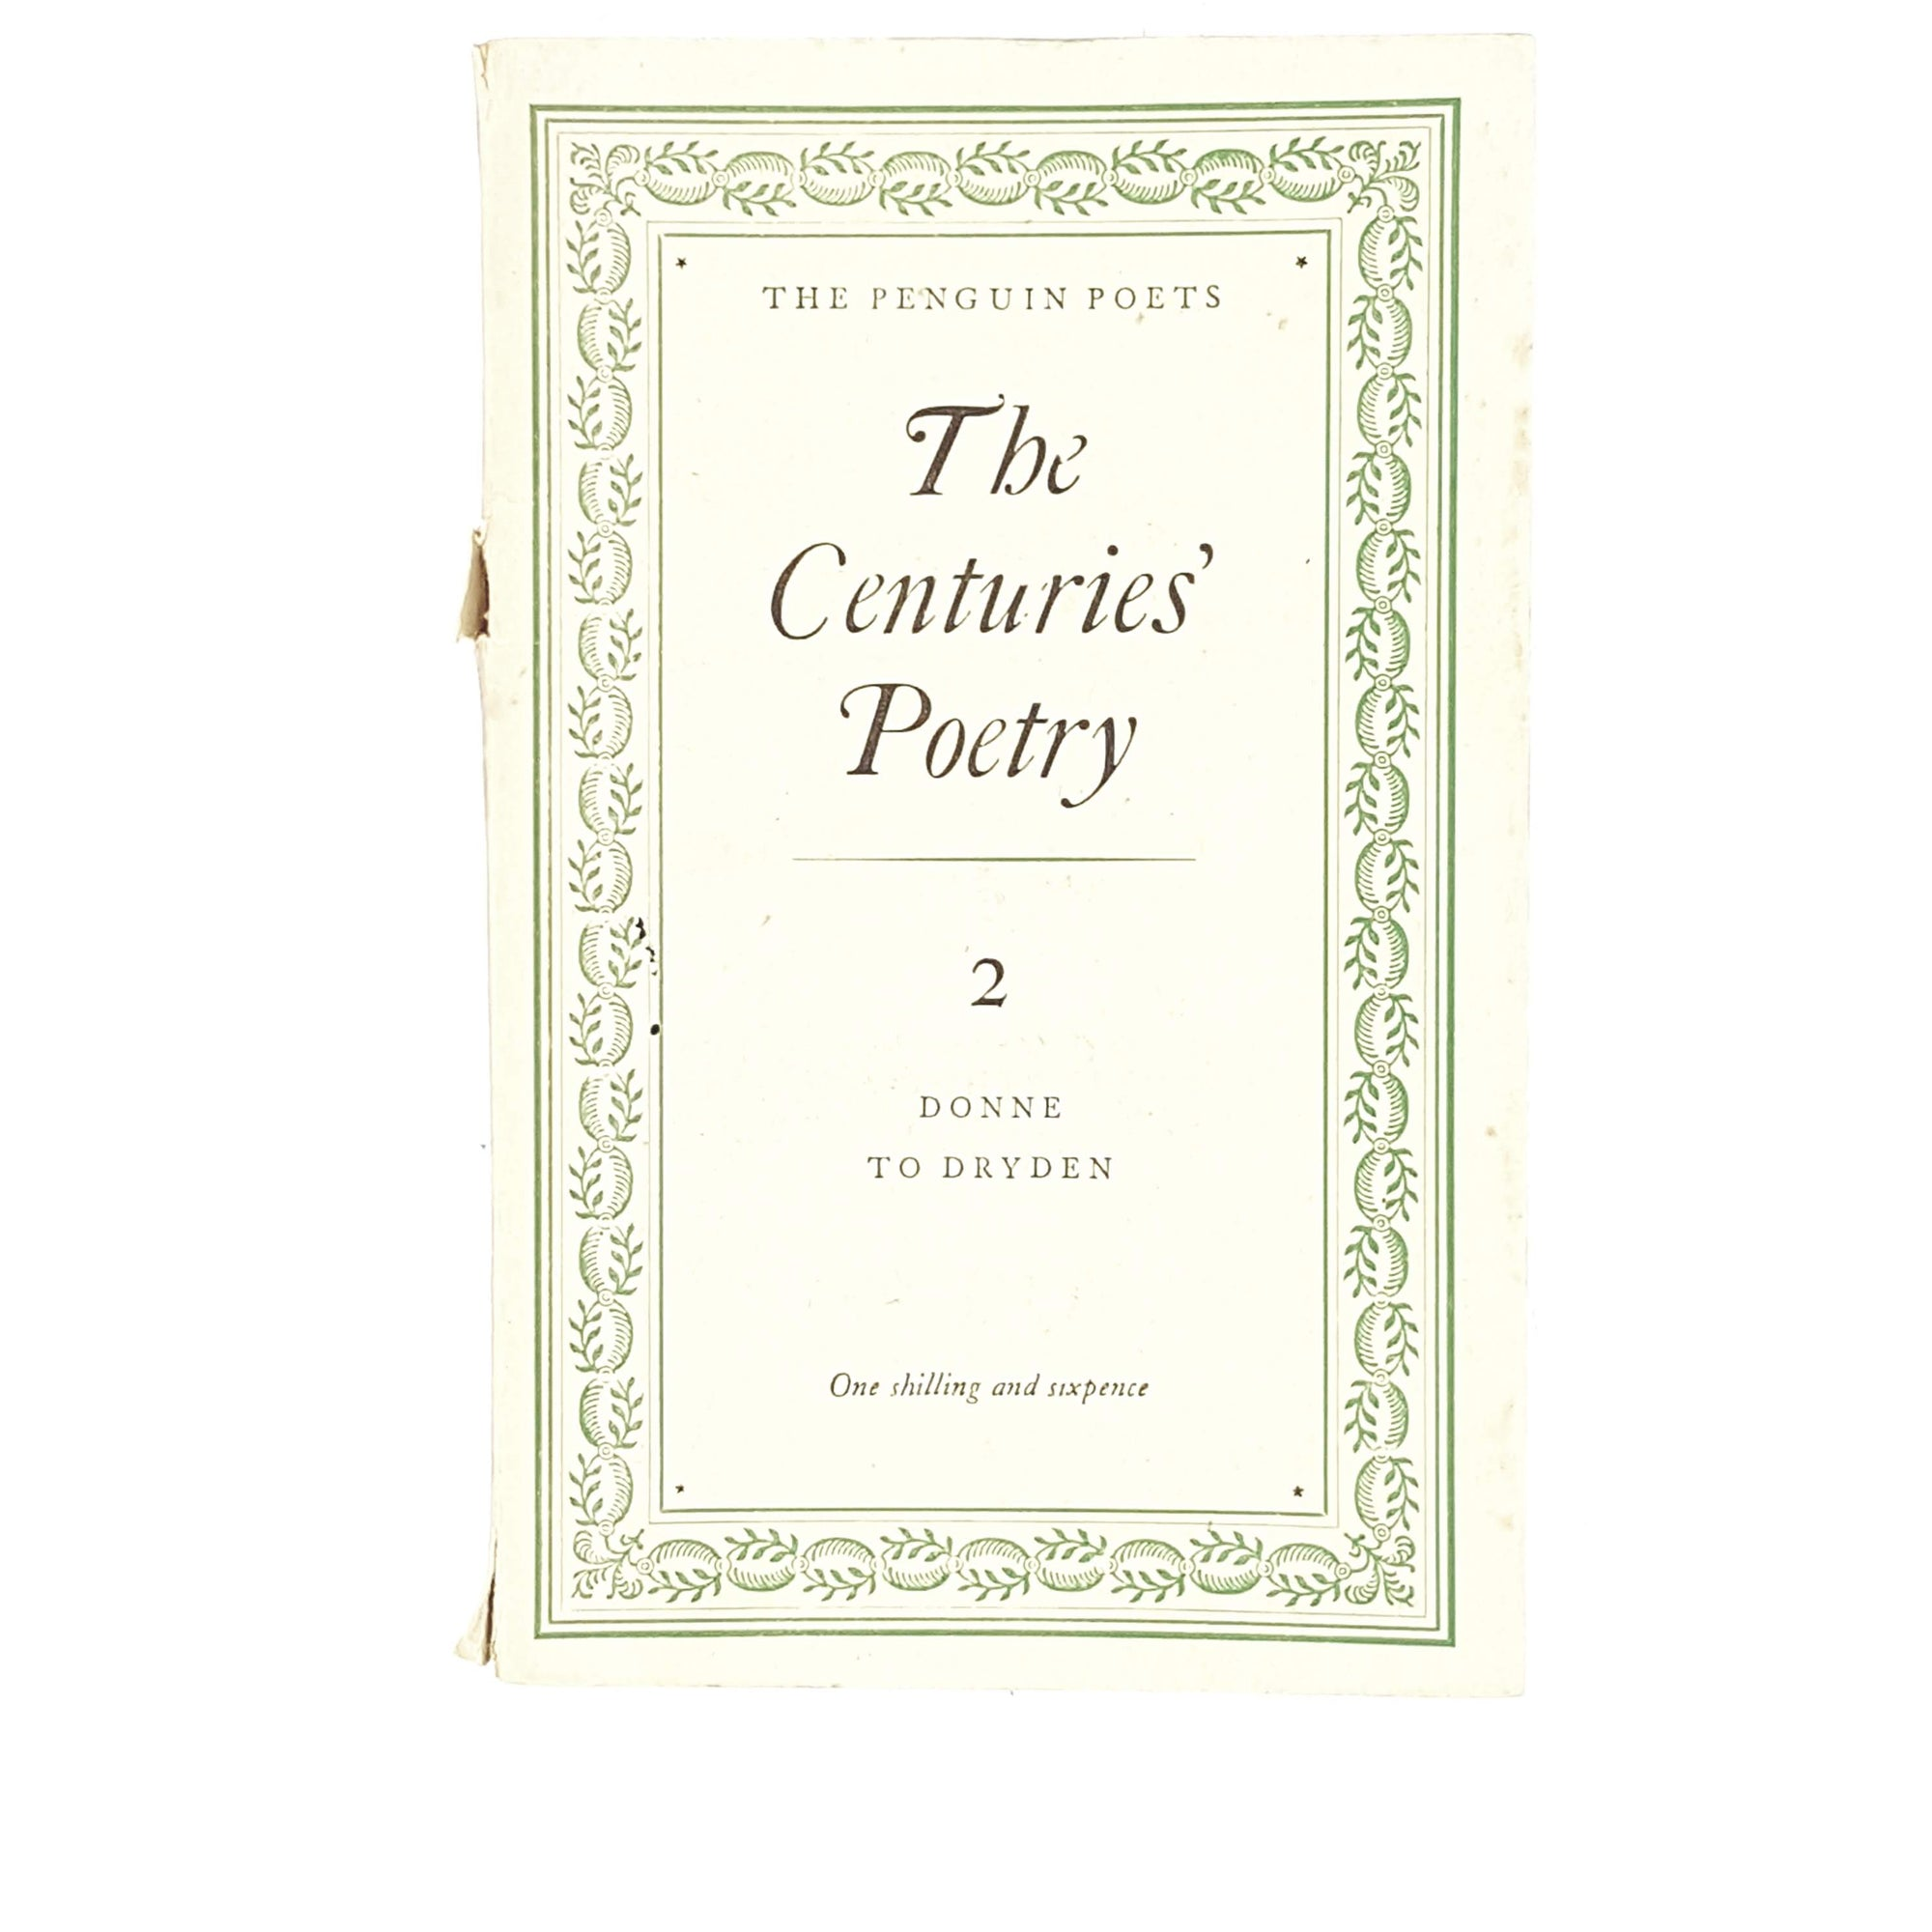 First Edition Penguin The Centuries' Poetry II 1949